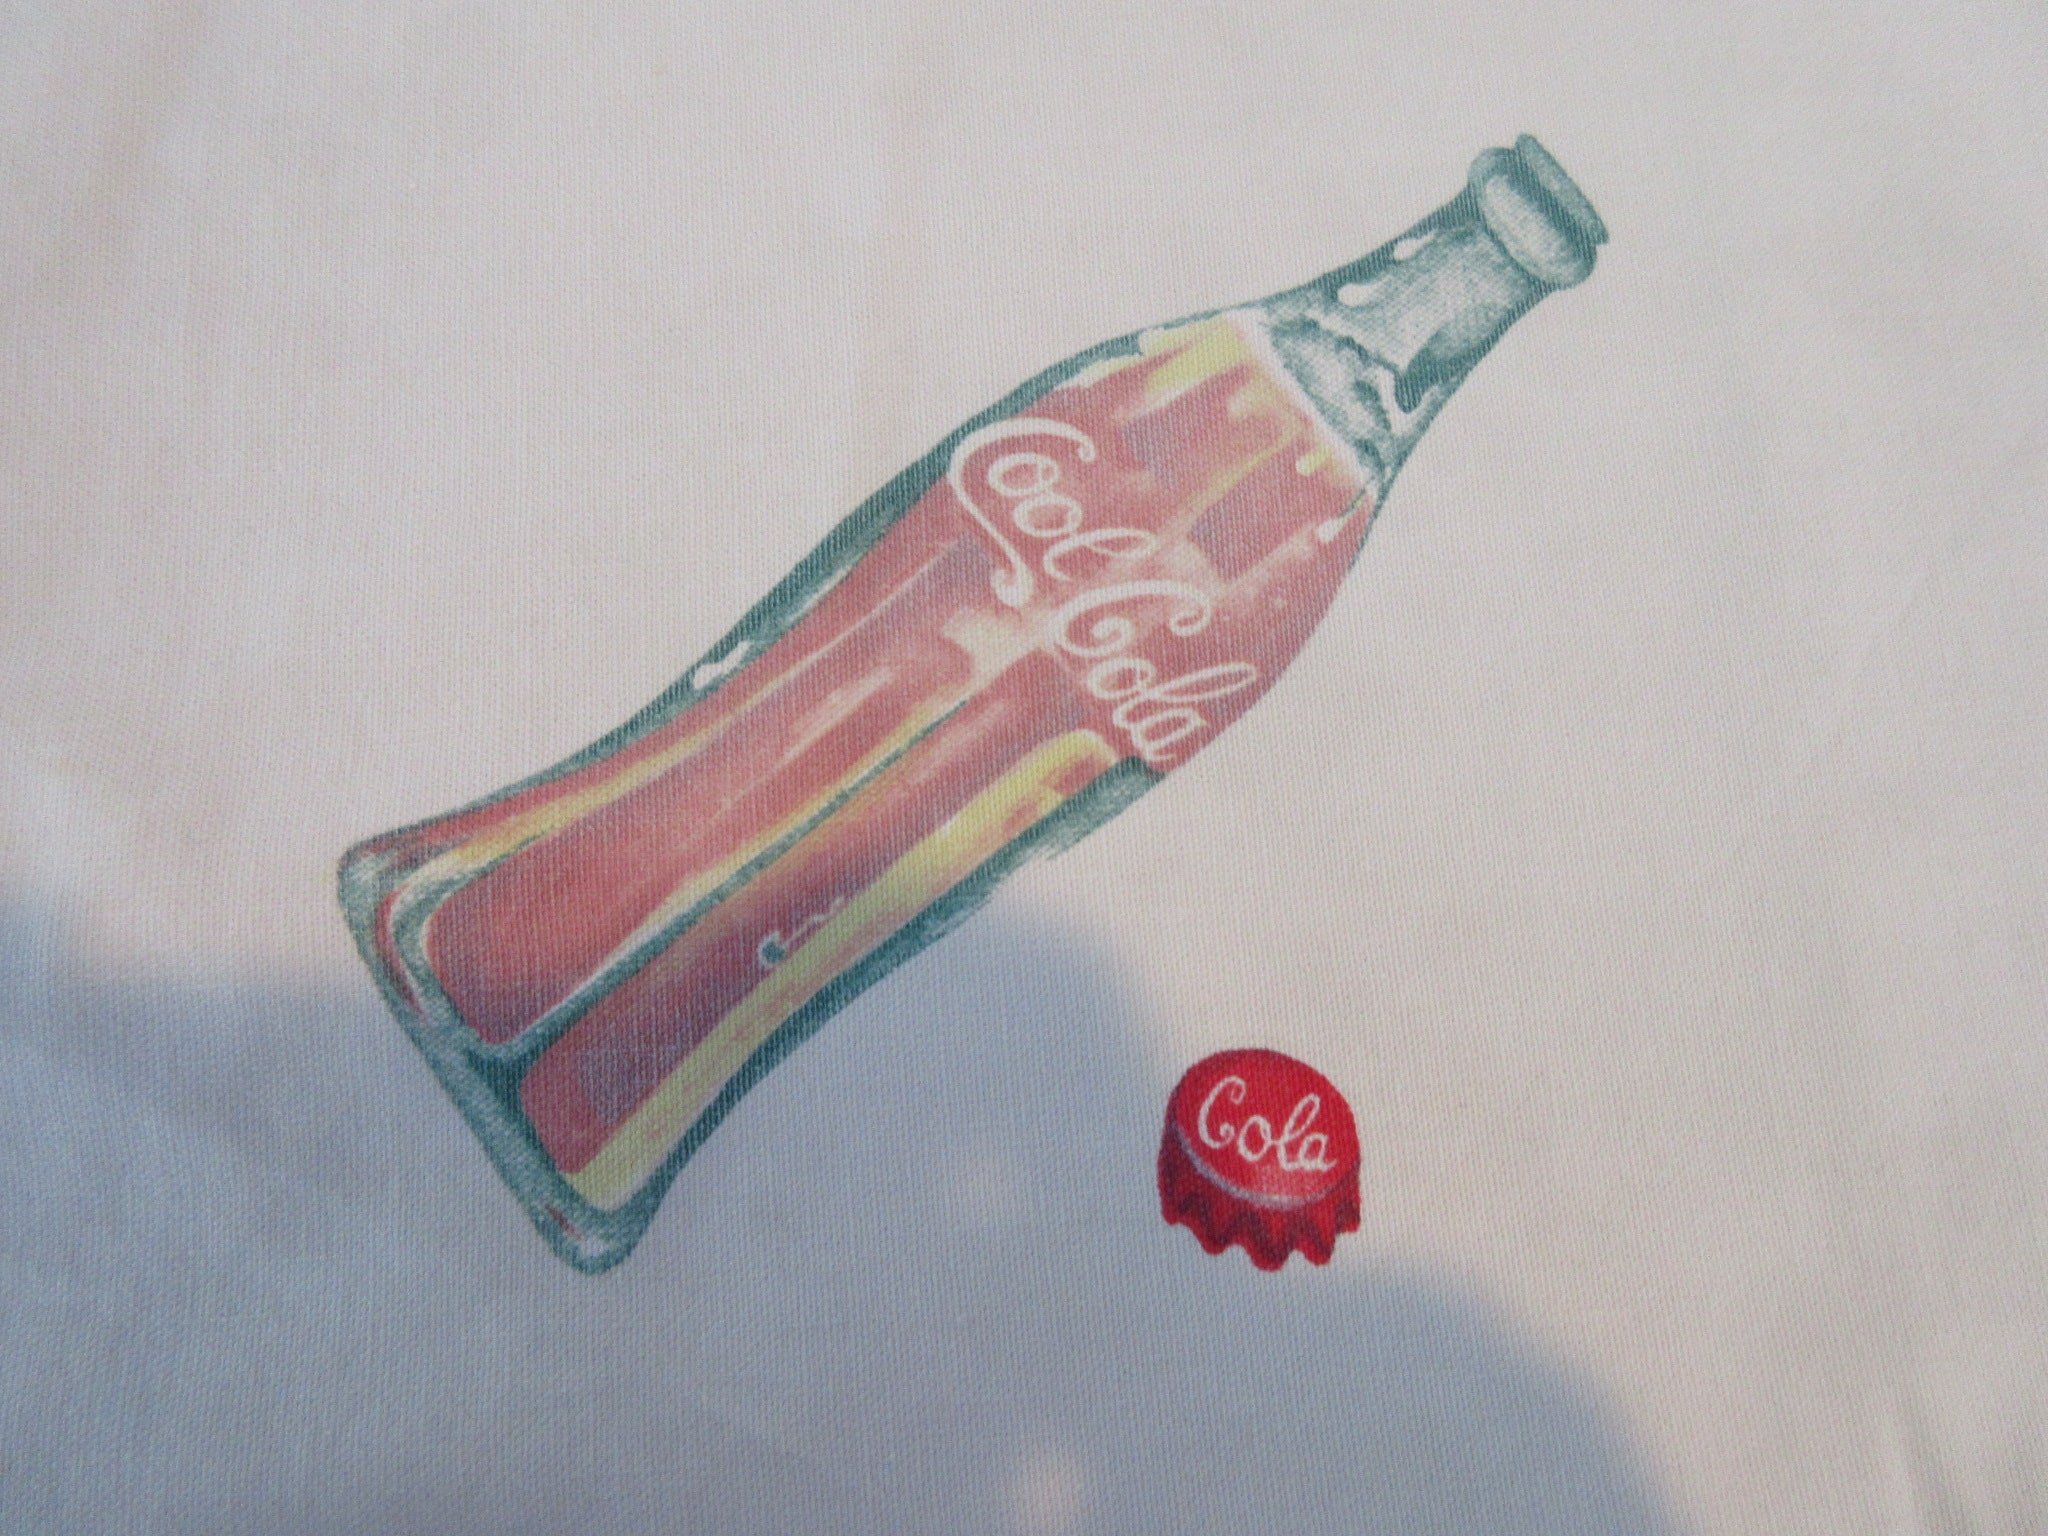 Odd Cool Cola Yardage? Novelty Vintage Printed Tablecloth (68 X 45)